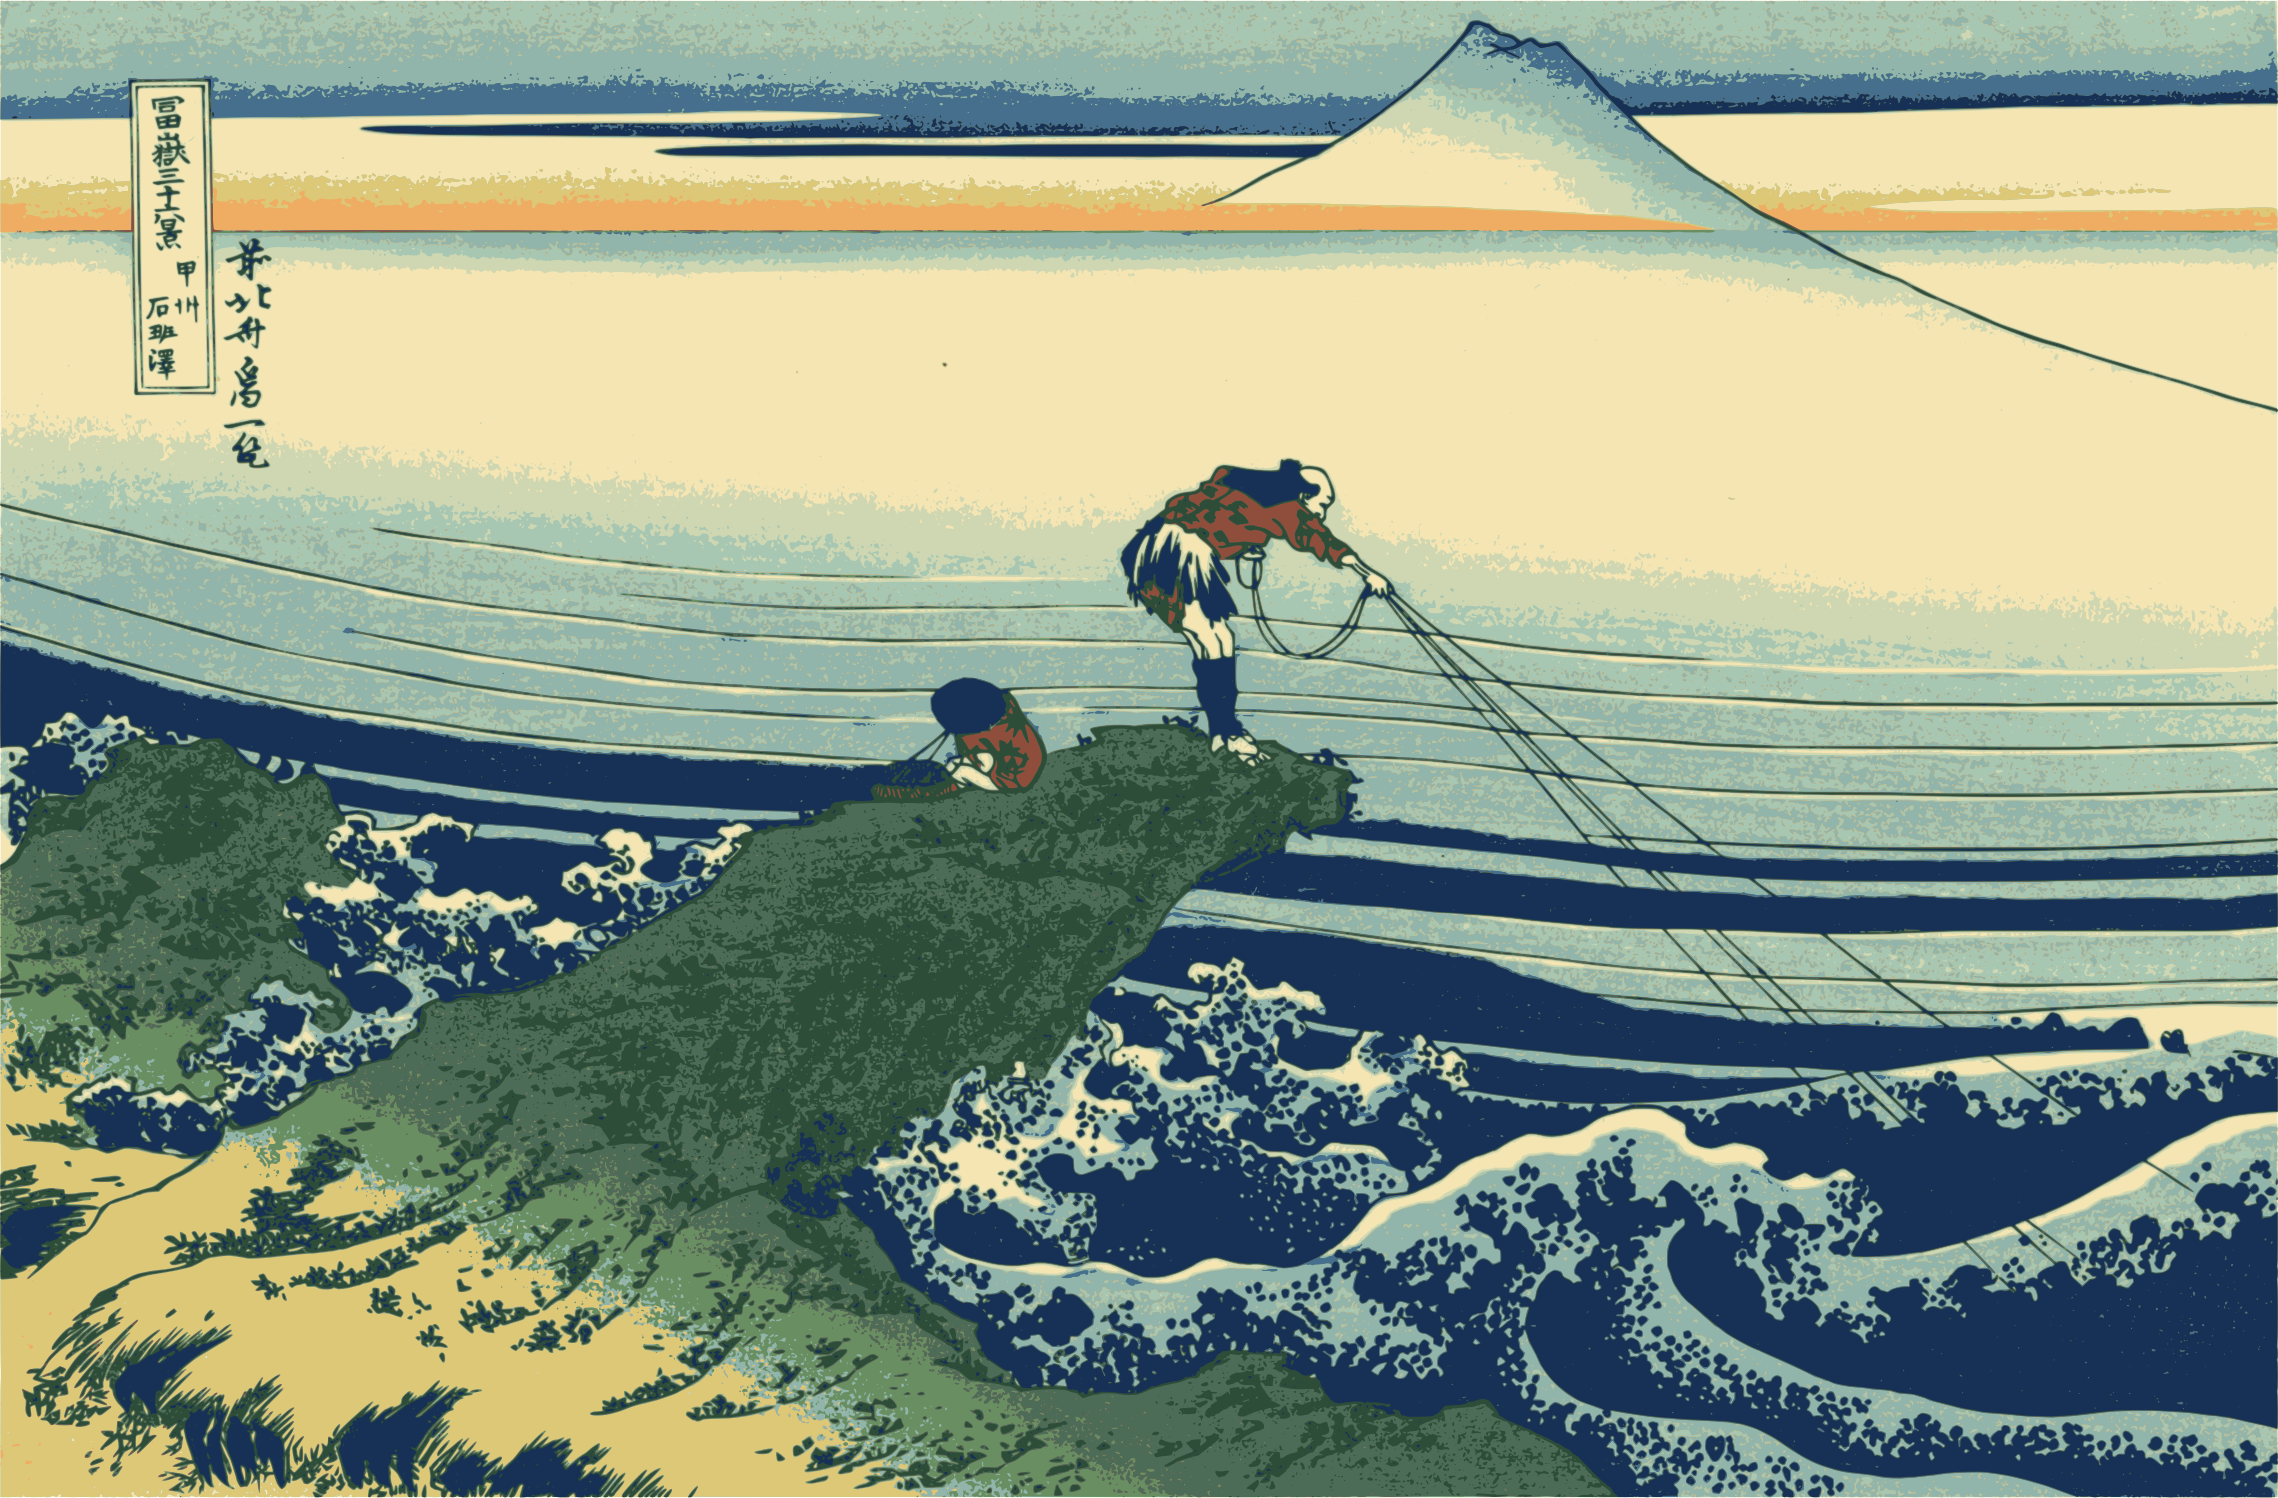 Hokusai-Mount Fuji-36-Views-45 by yamachem2